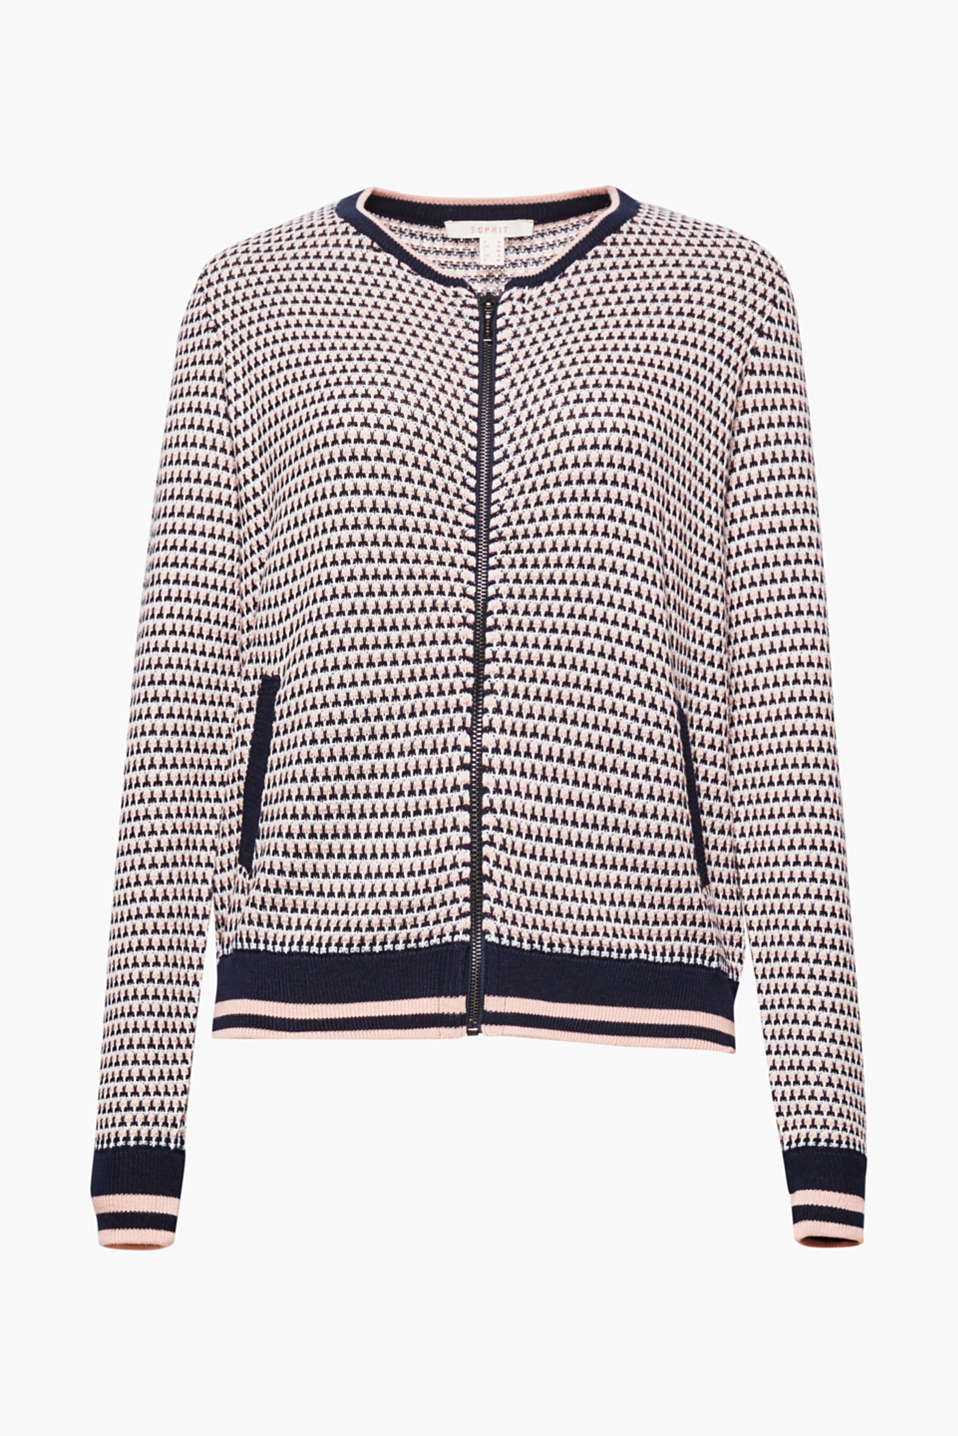 The bomber design featuring classic knit borders makes this jacquard pattern cardigan look beautifully casual!